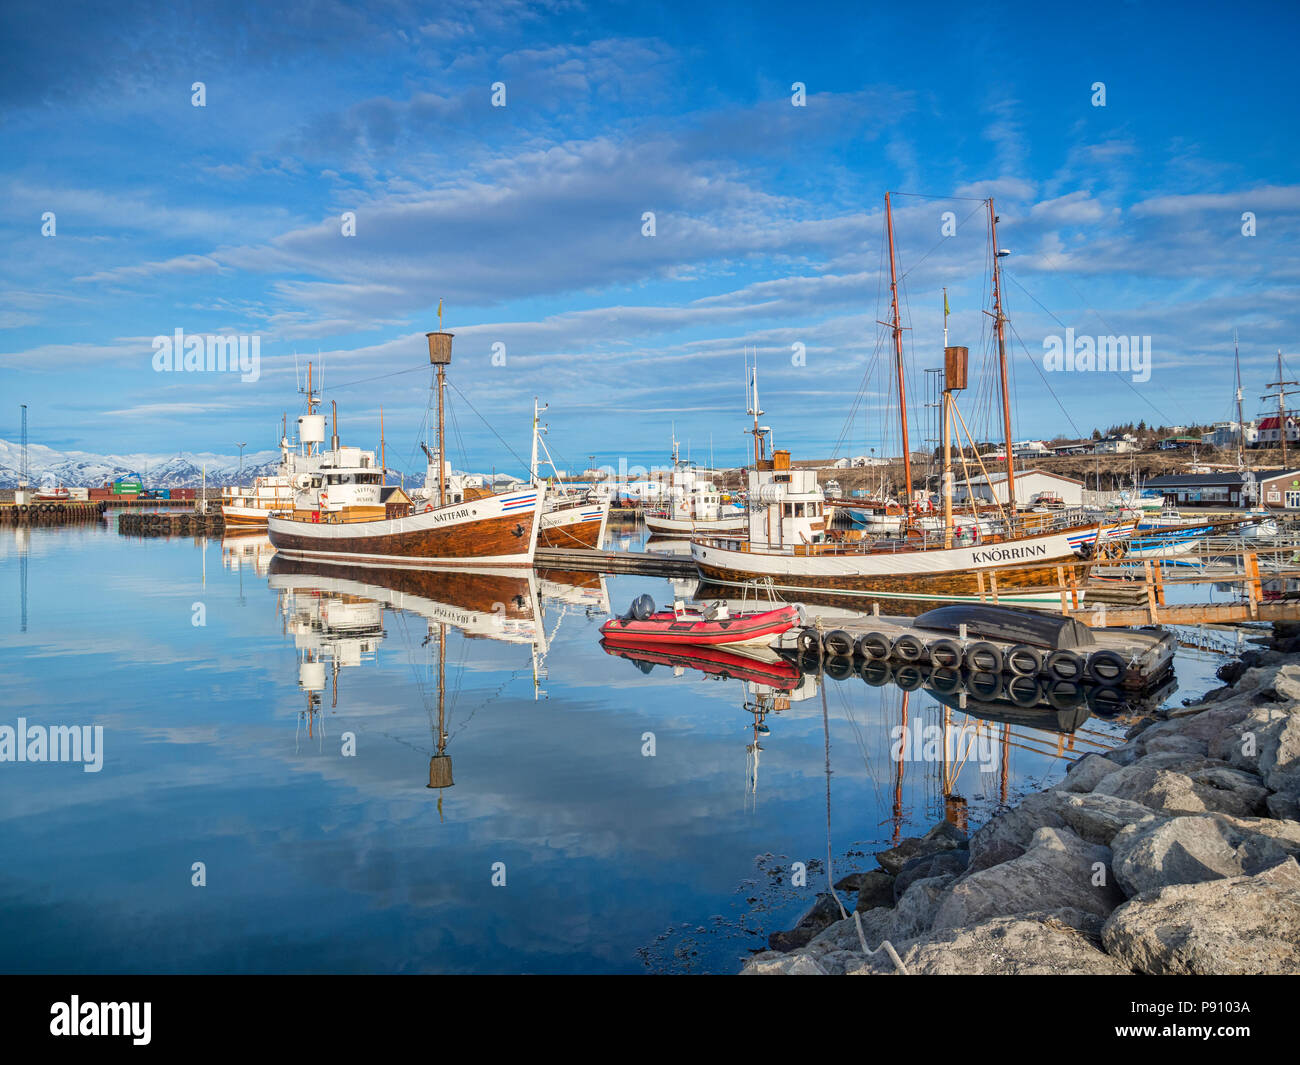 13 April 2018: Husavik, Iceland. The harbour at Husavik in Northern Iceland, with boats, including whale-watching vessels, reflected in the calm water - Stock Image